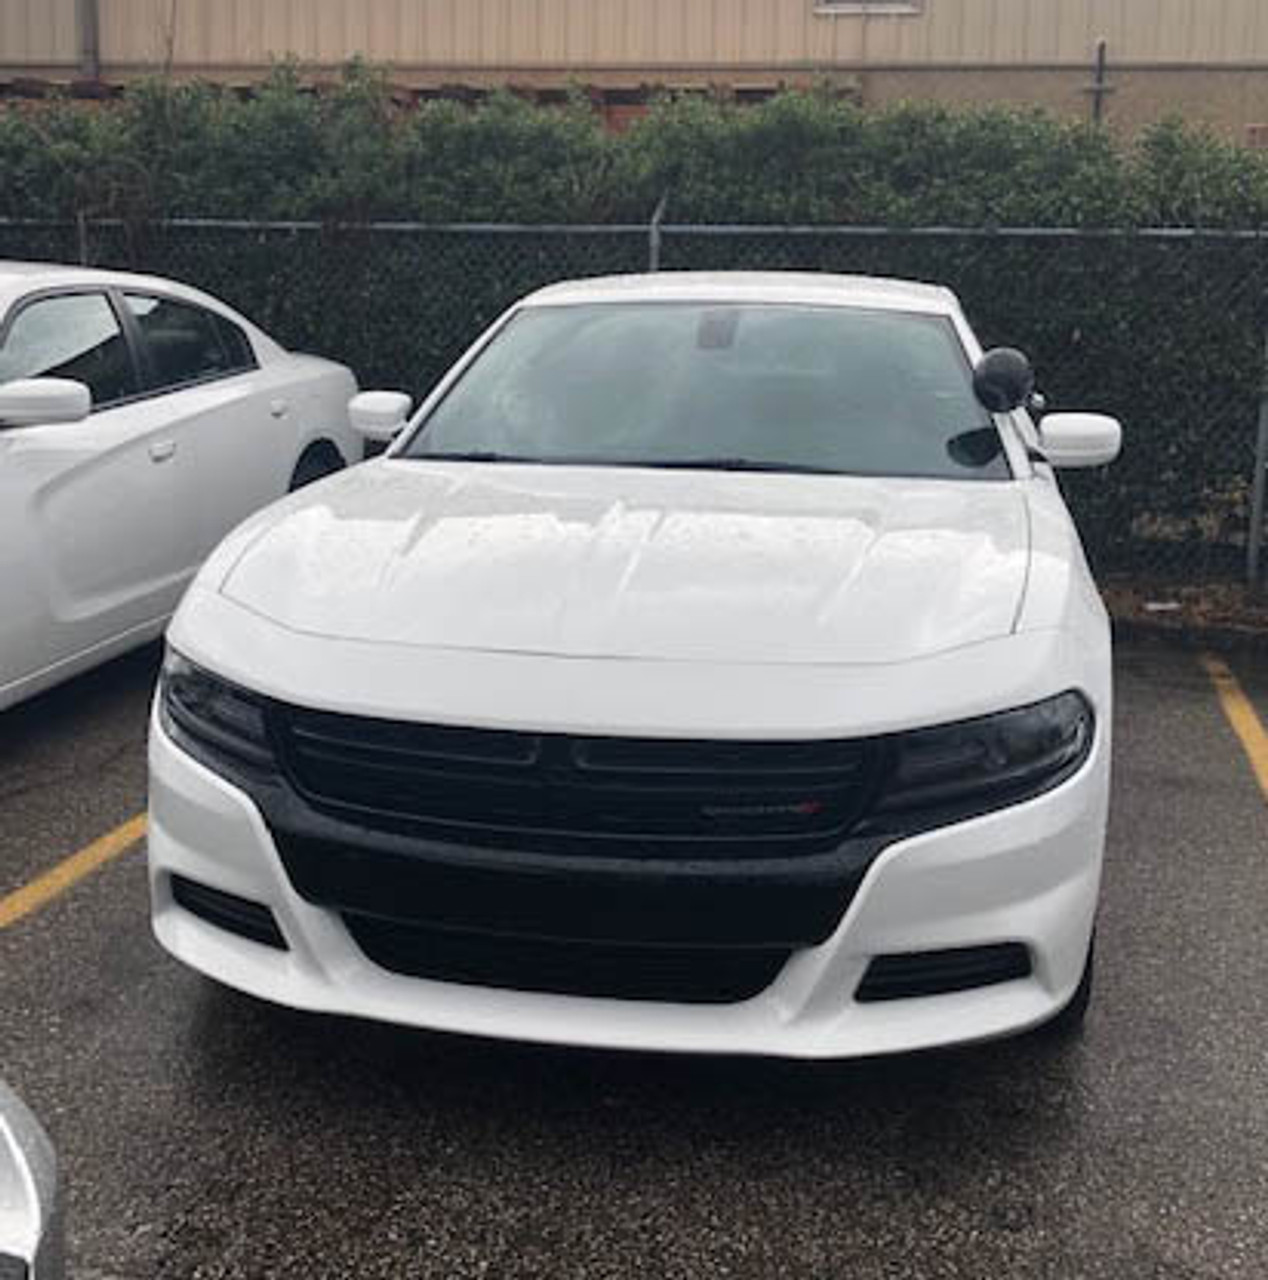 Used 2018 White Dodge Charger HEMI AWD ready to be built as a Marked Patrol Package Police Pursuit Car,  choose any color LED Lights, + Delivery, with 55,000 miles on it